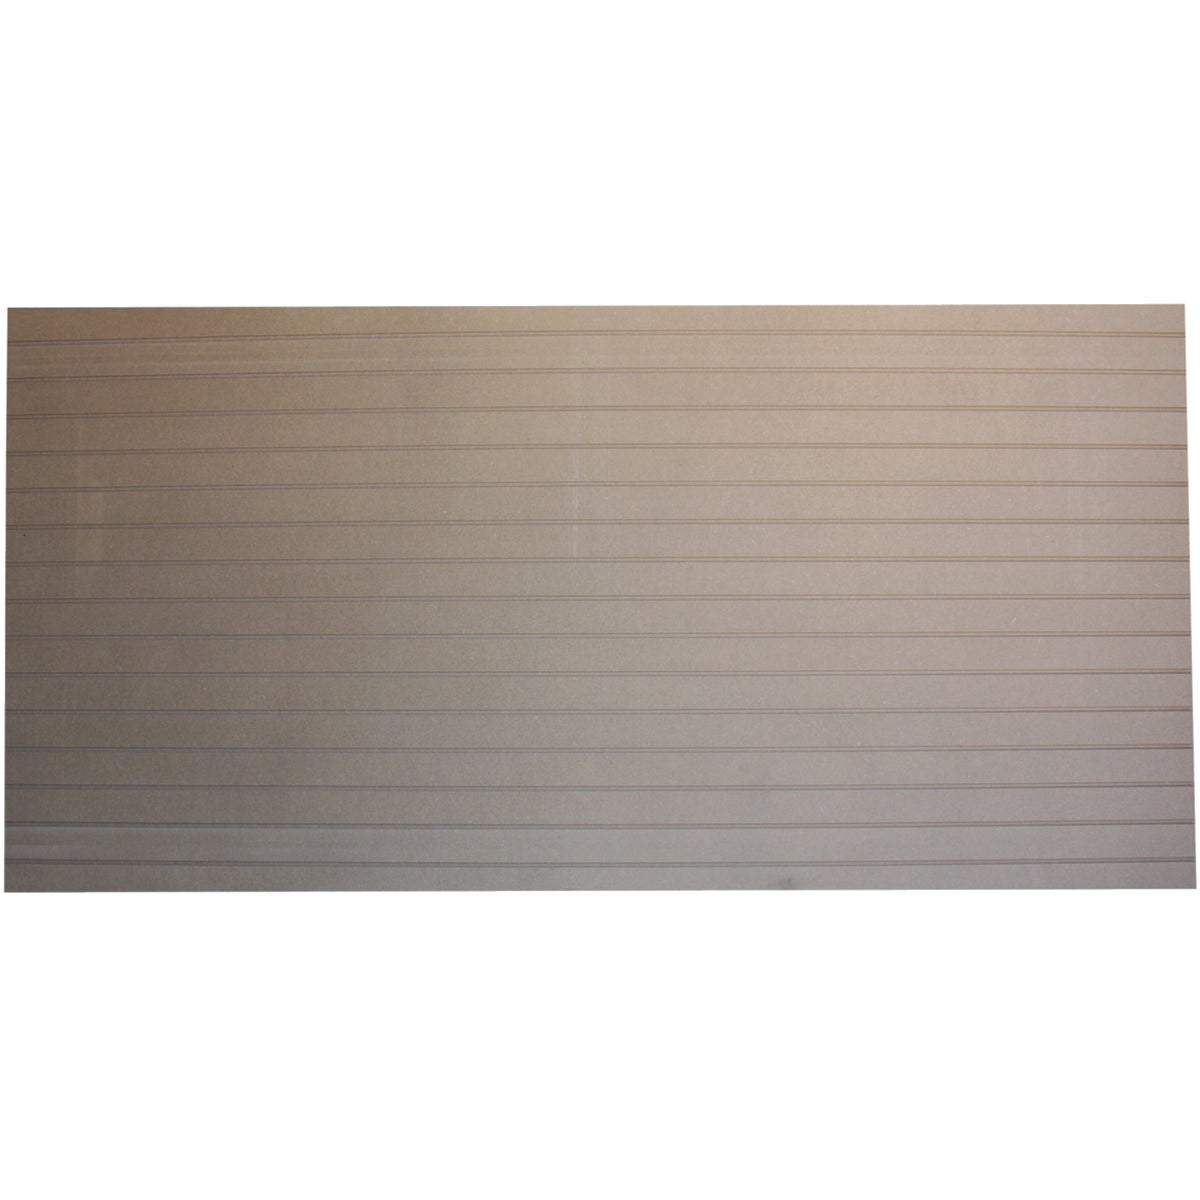 4X8 PAINT GRADE SLATWALL - GPGRU01-03S-000 by Garage Escape